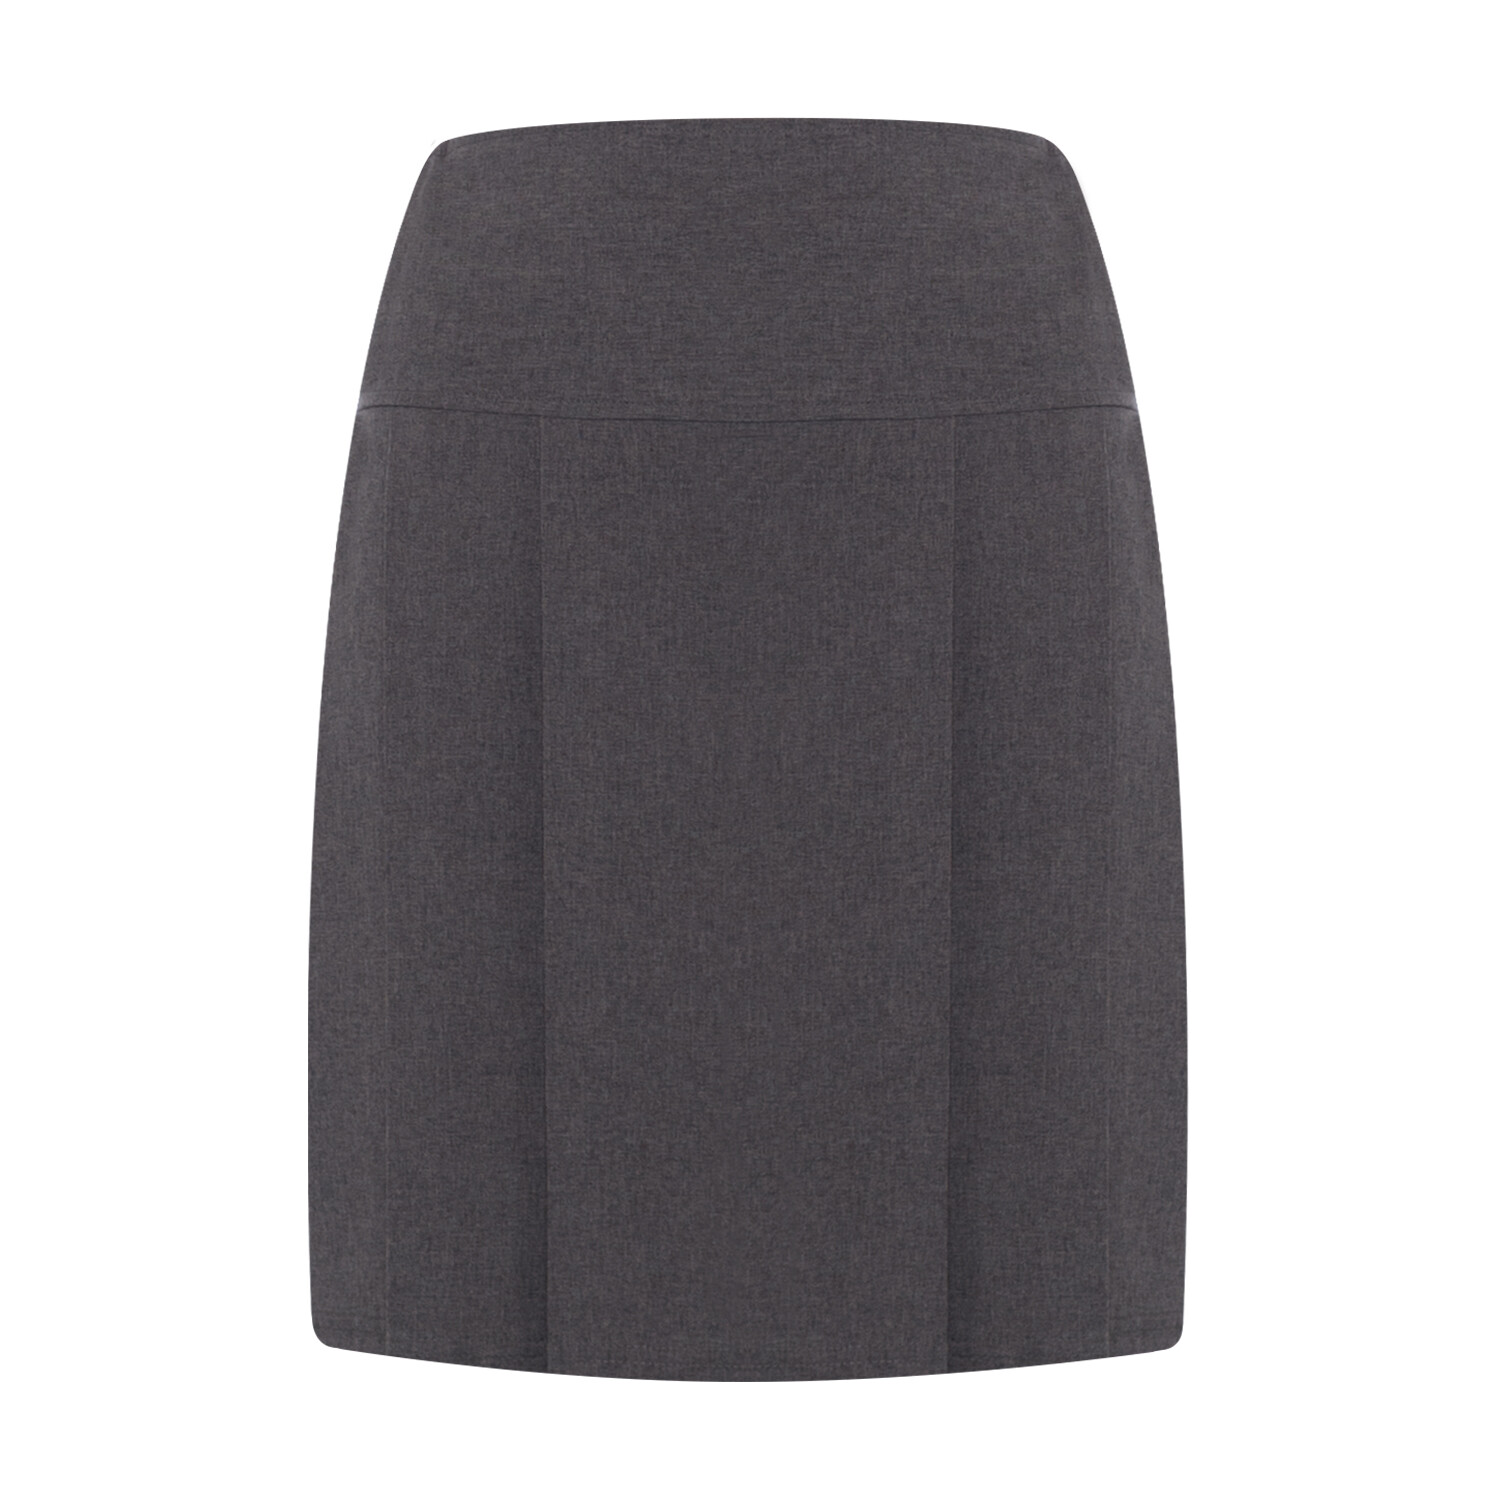 Primary School 'Banbury' Pleated Skirt (From Age 3-4 in 3 colours) 'Best Seller'